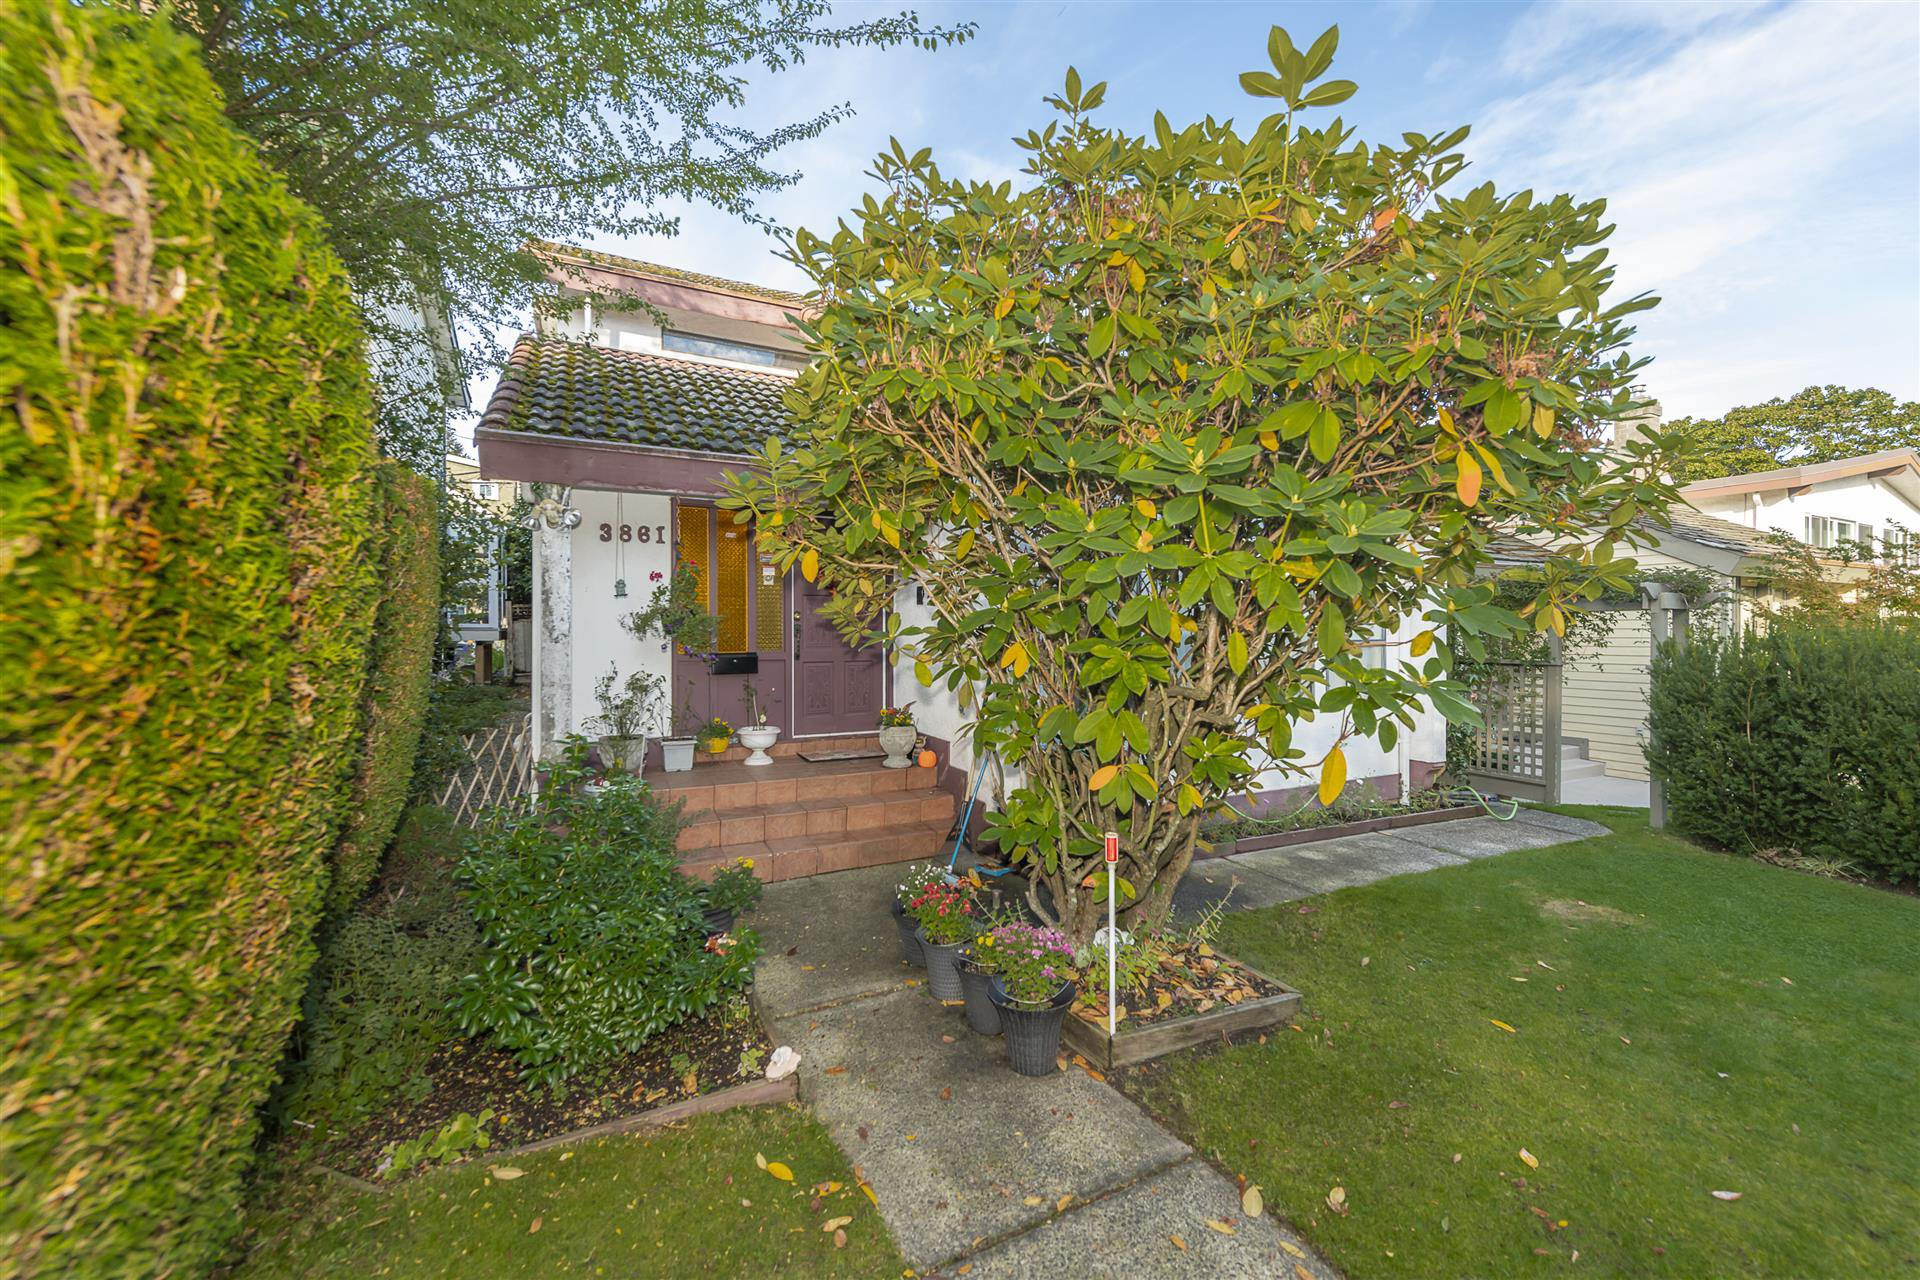 Main Photo: 3861 BLENHEIM Street in Vancouver: Dunbar House for sale (Vancouver West)  : MLS®# R2509255